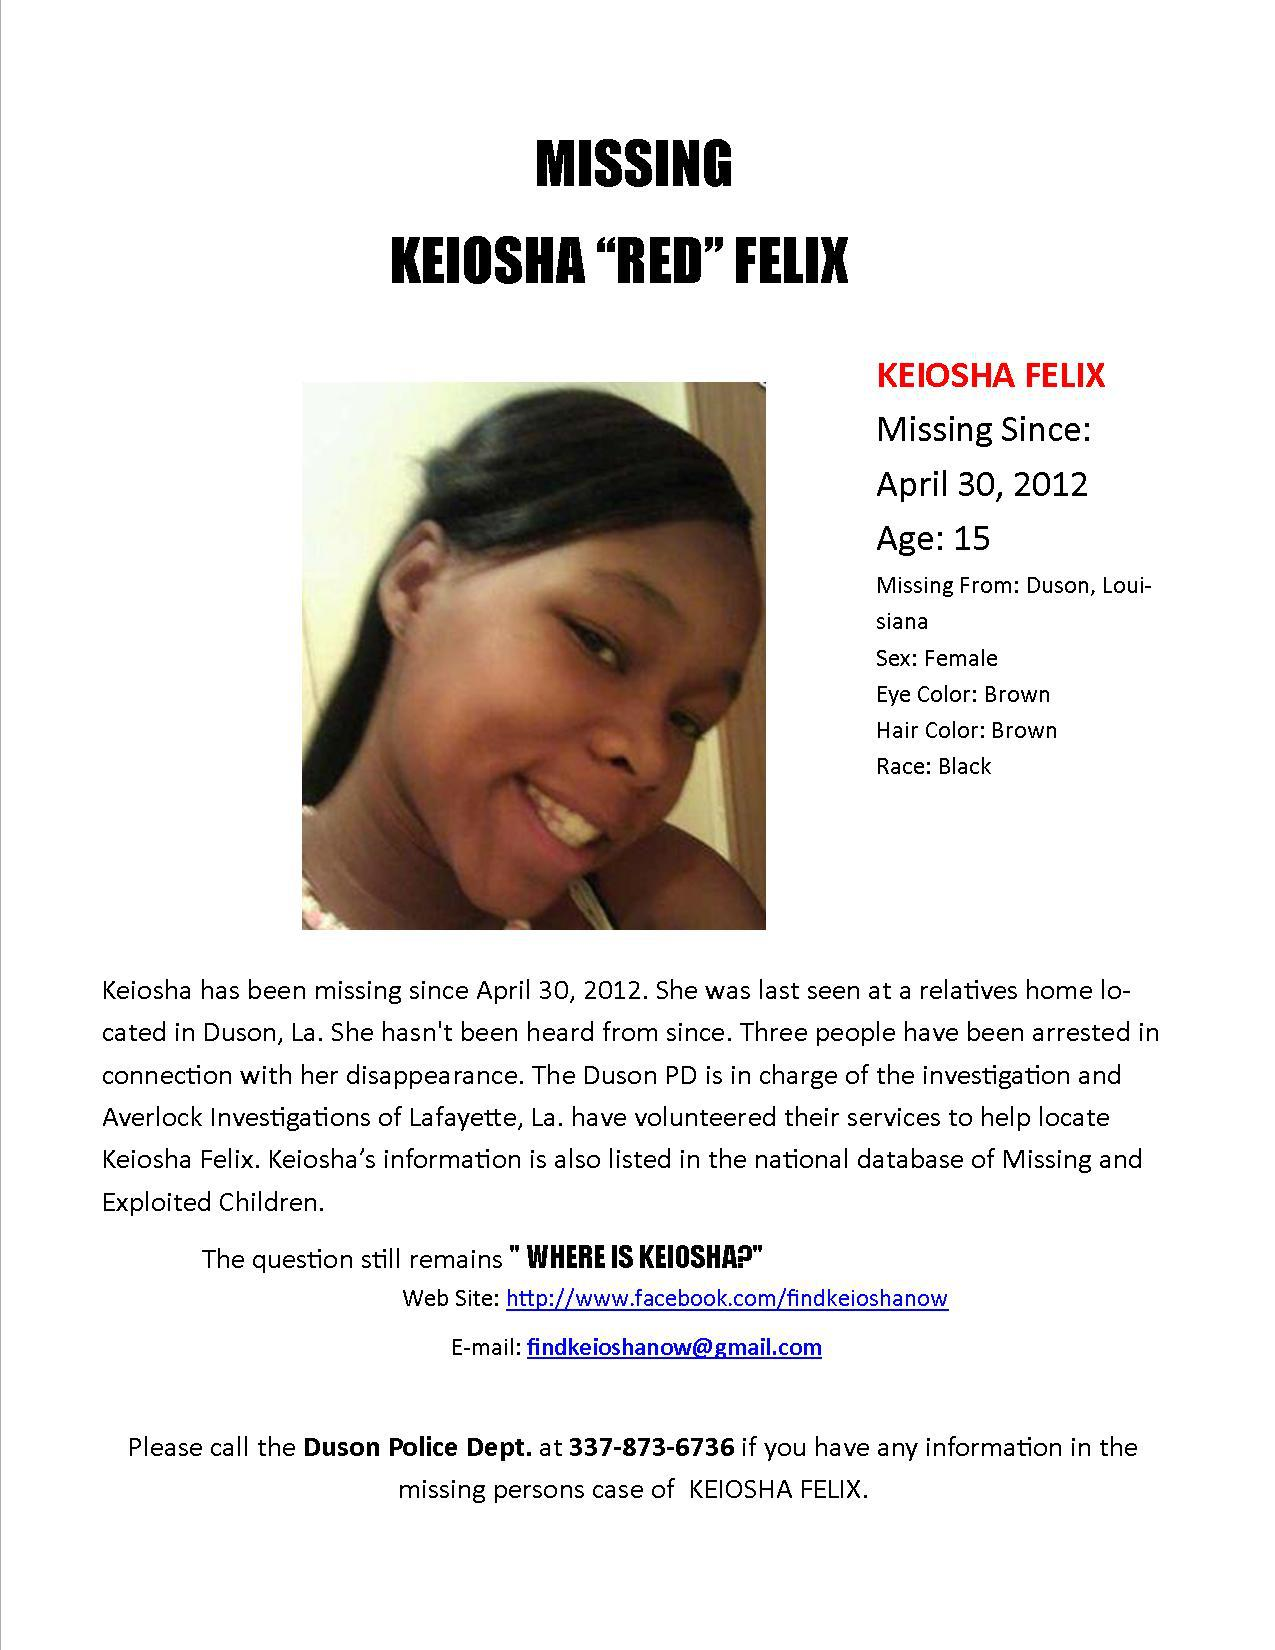 Keiosha Felix - Missing from Duson, LA